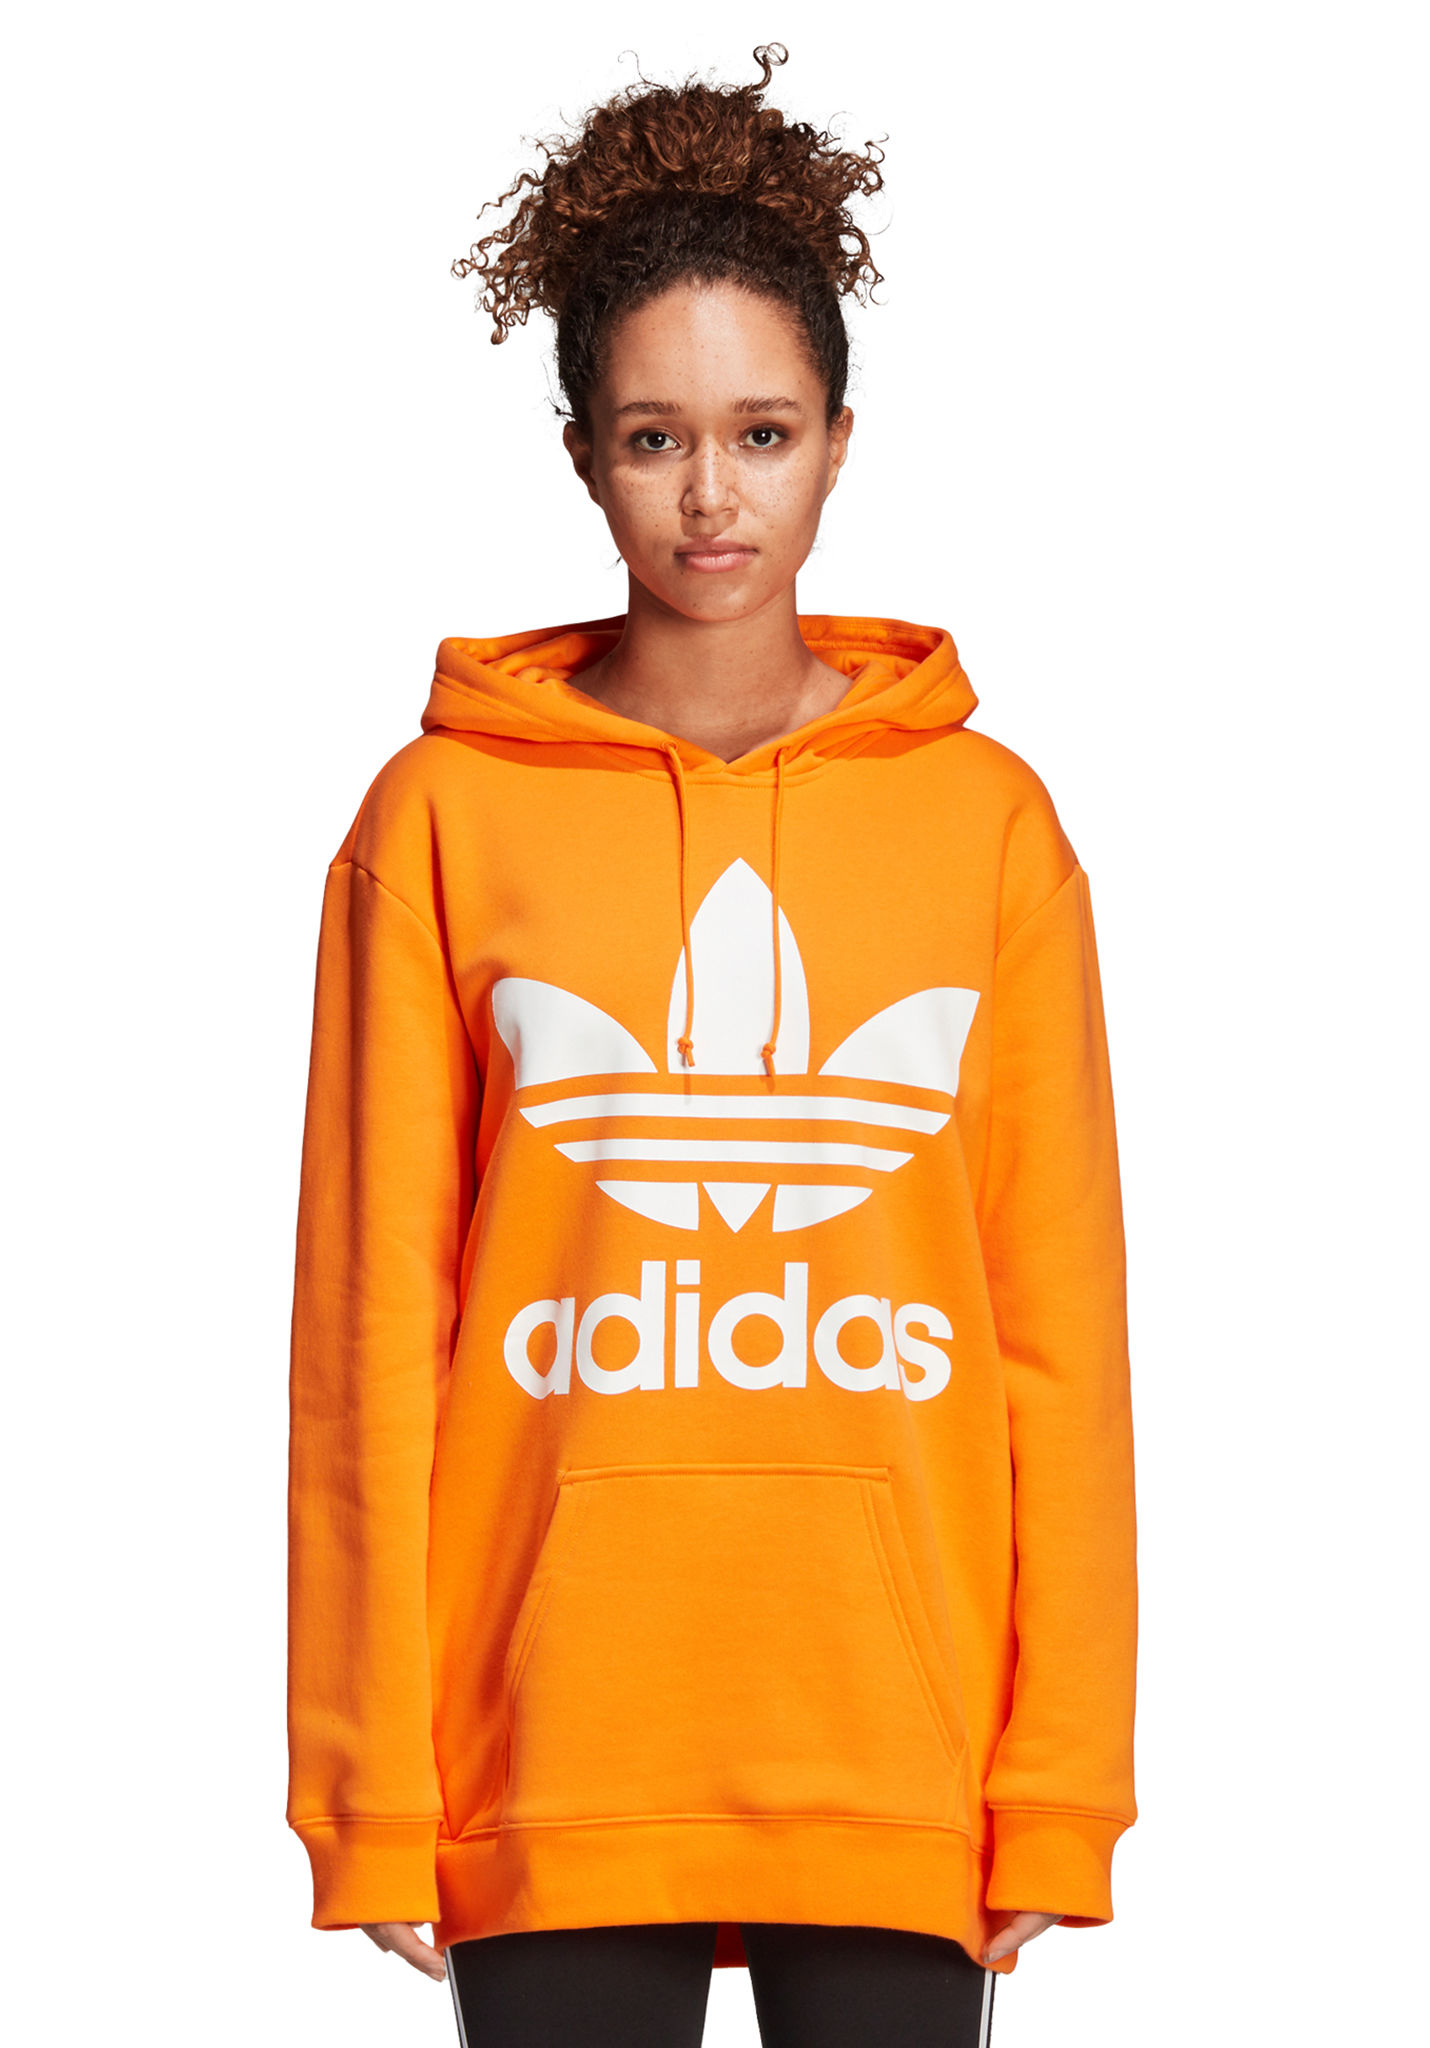 ADIDAS ORIGINALS Bf Trefoil - Hooded Sweatshirt for Women - Orange - Planet  Sports 8e4e71b5e6364